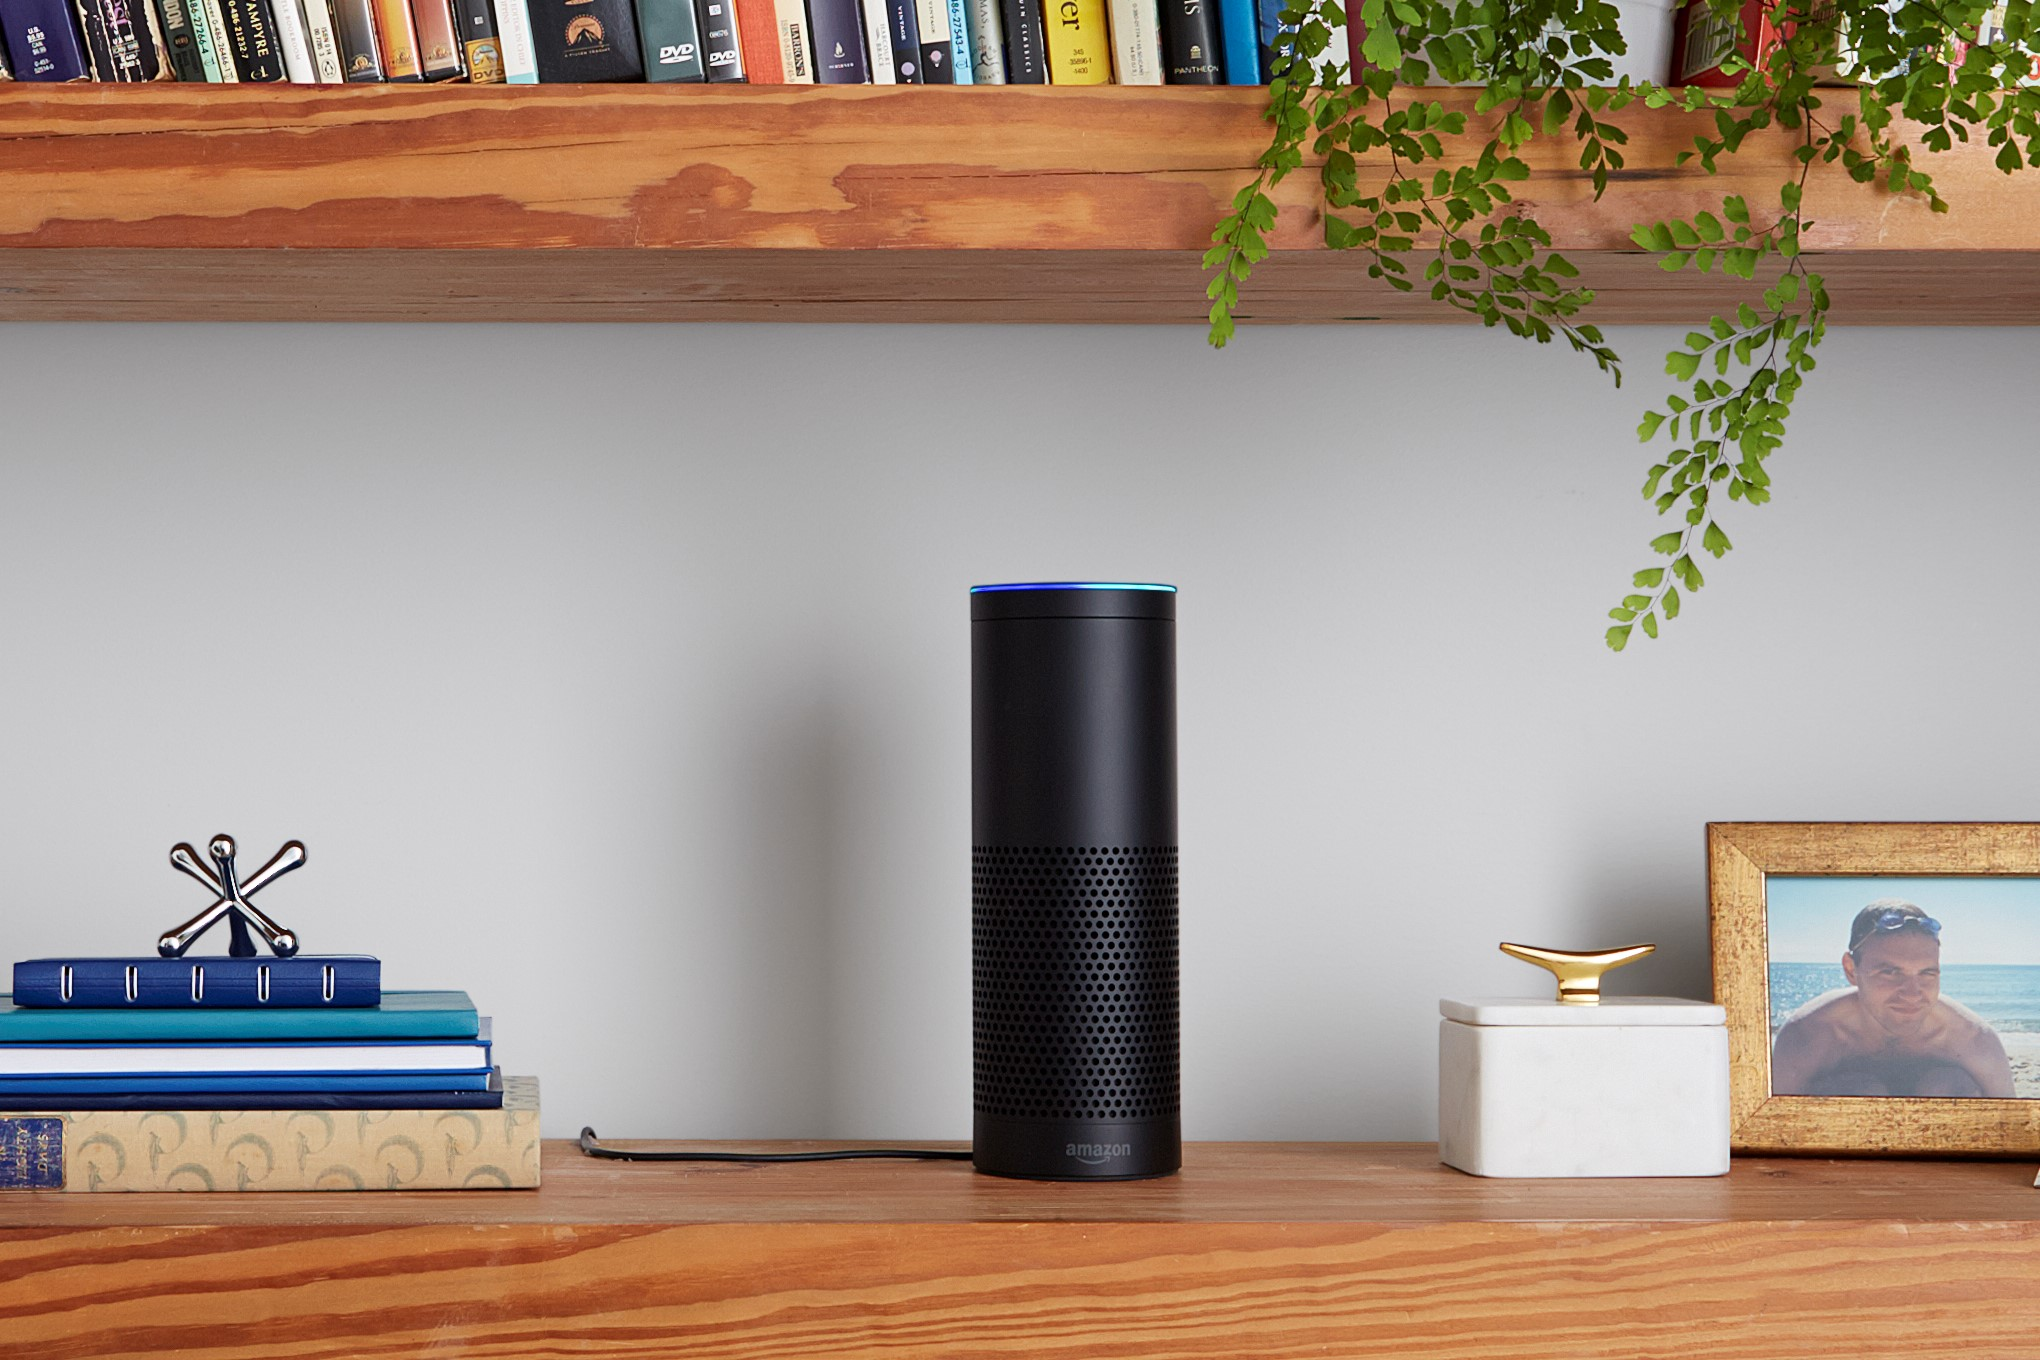 3 reasons why brands shouldn't miss out on Amazon Echo